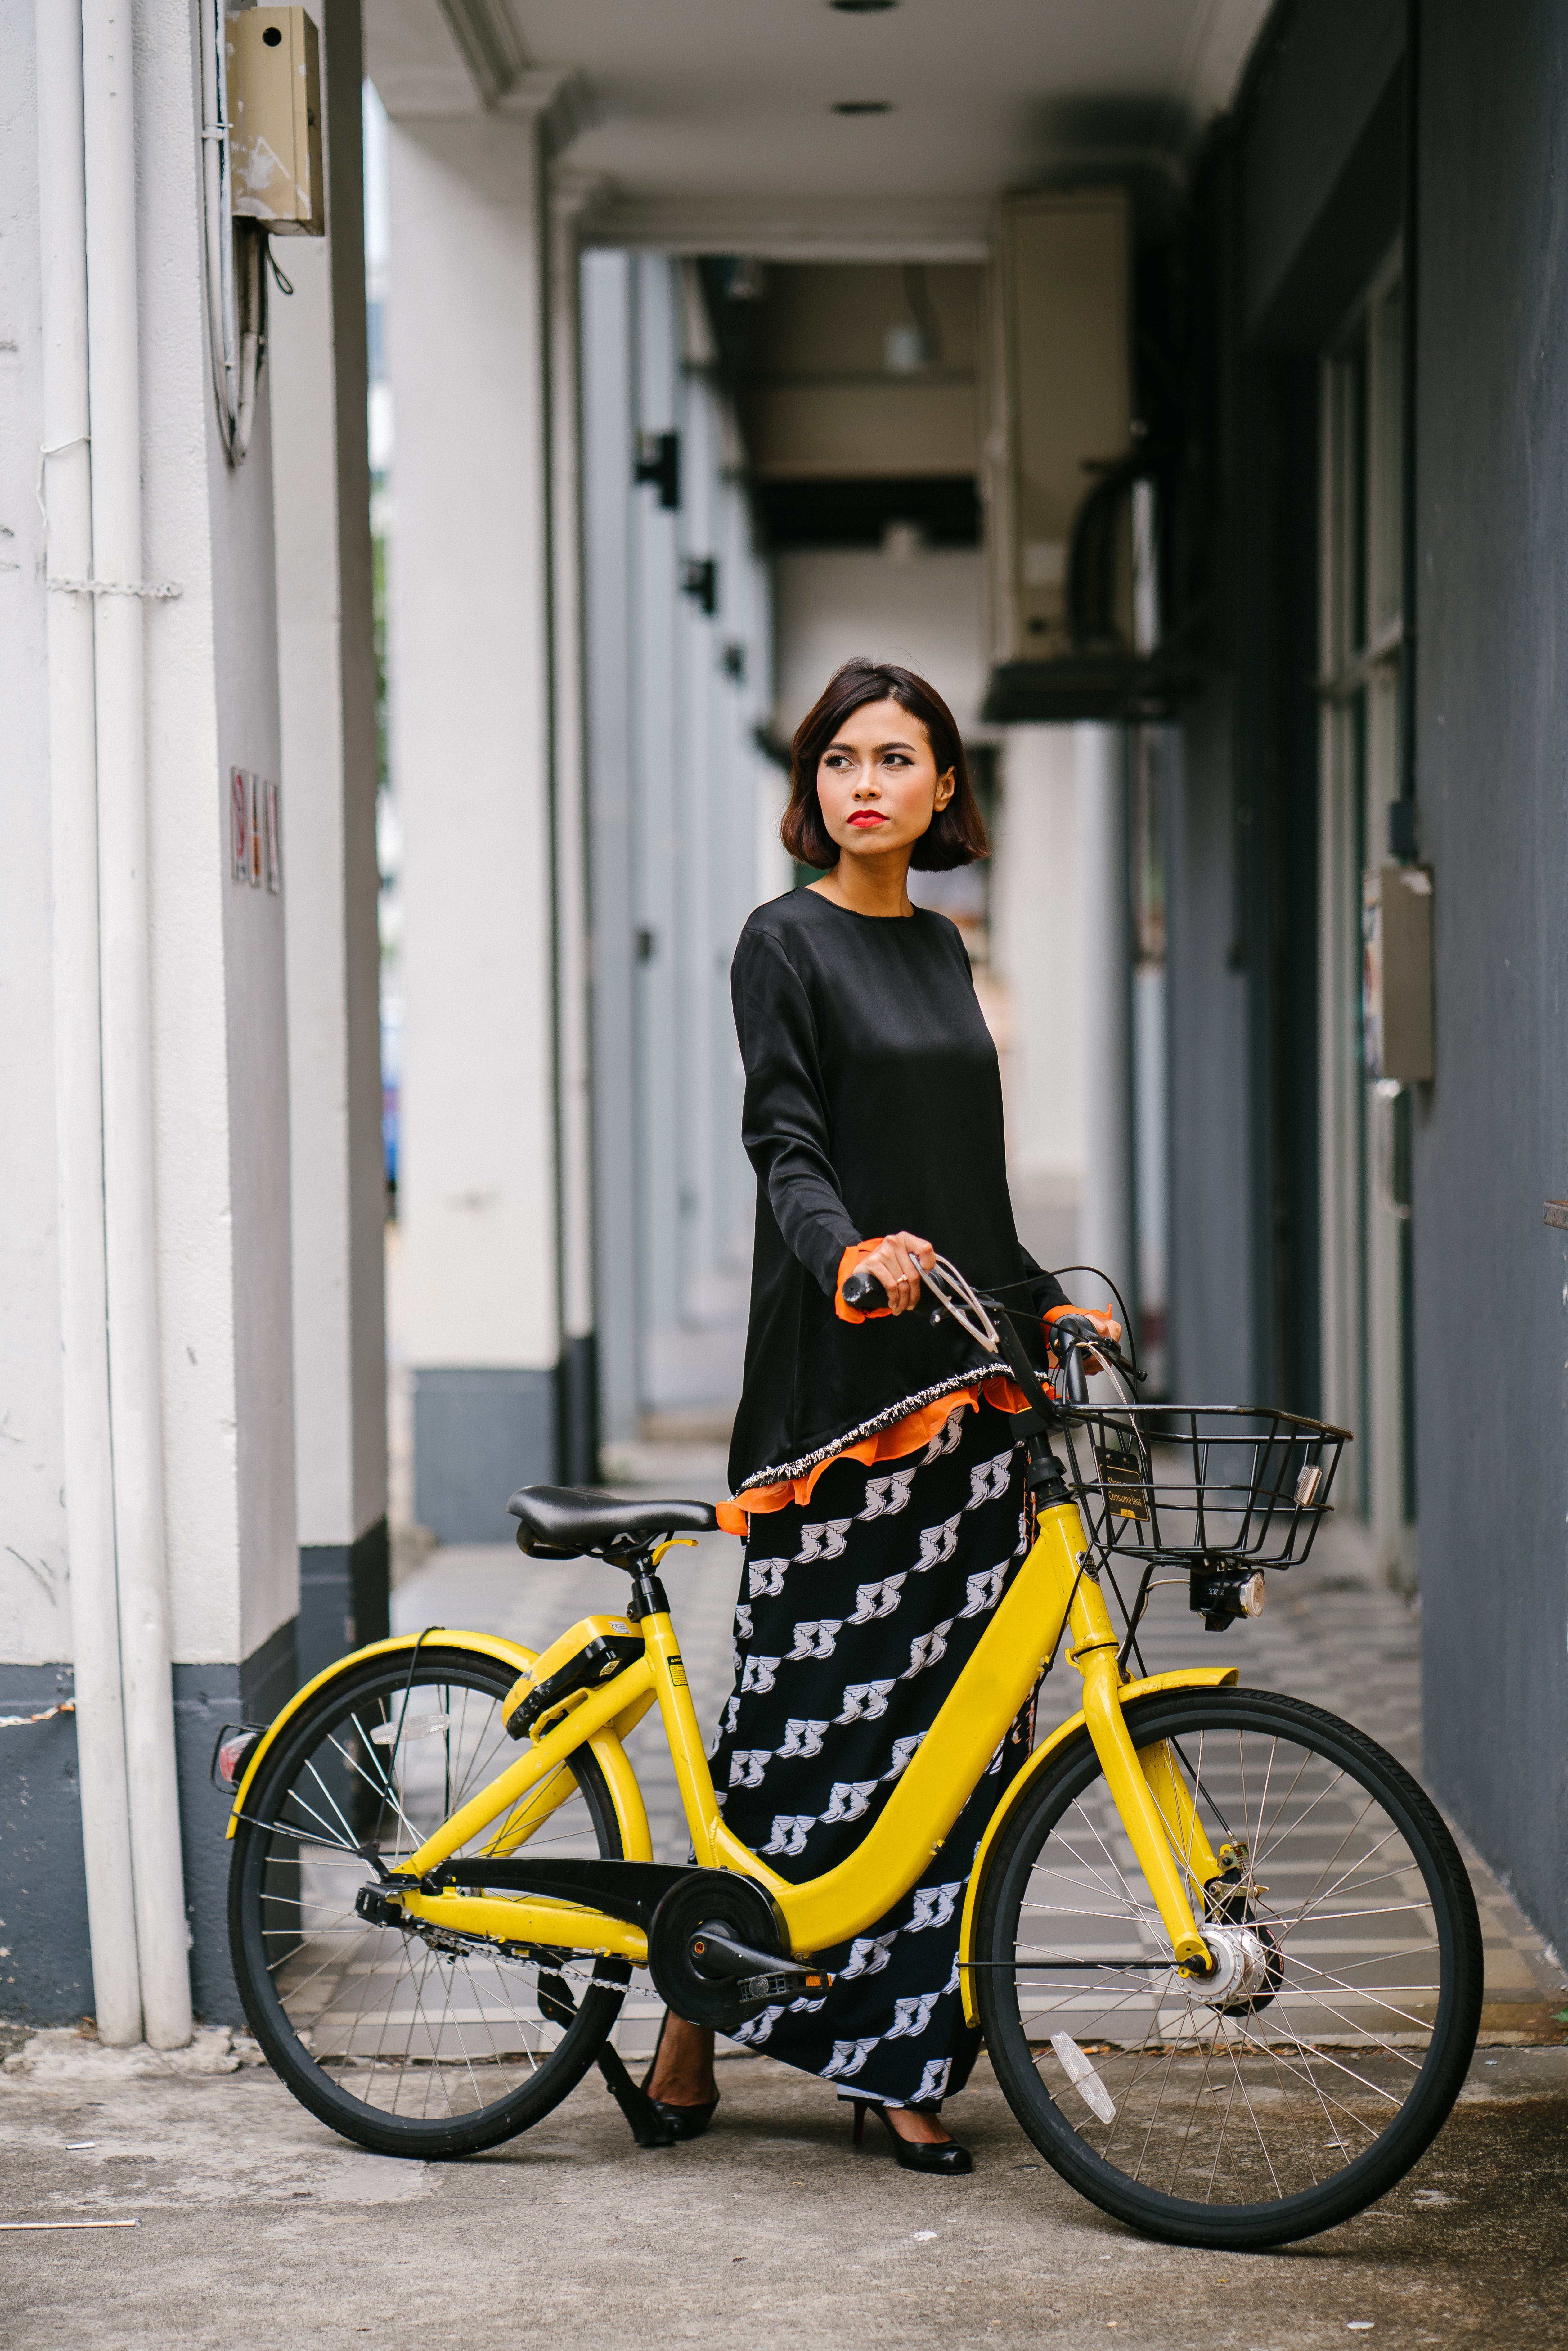 Woman Holding Yellow Bike at Daytime